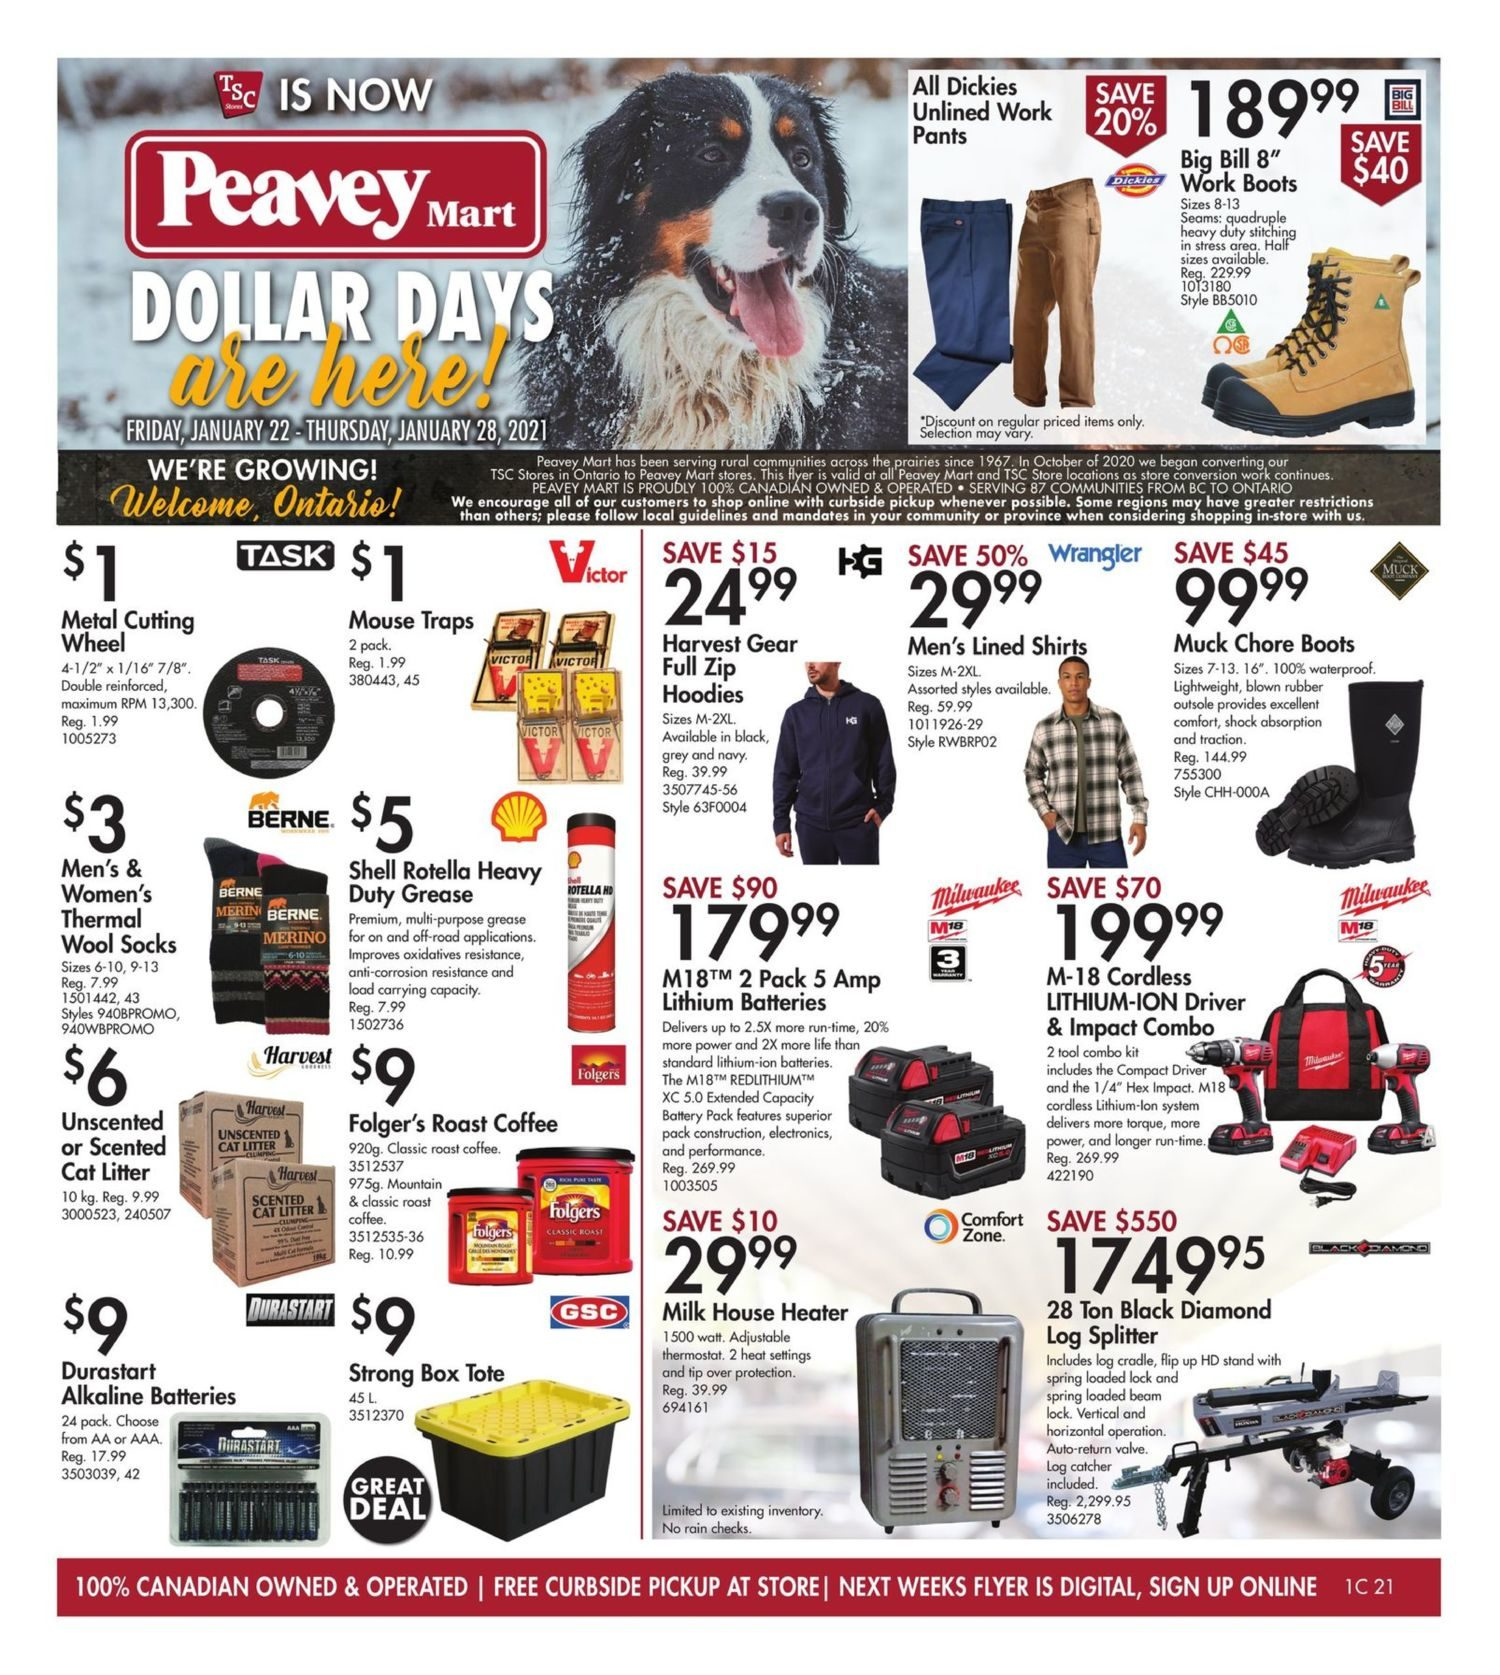 TSC Stores - Weekly Deals - Dollar Days Are Here